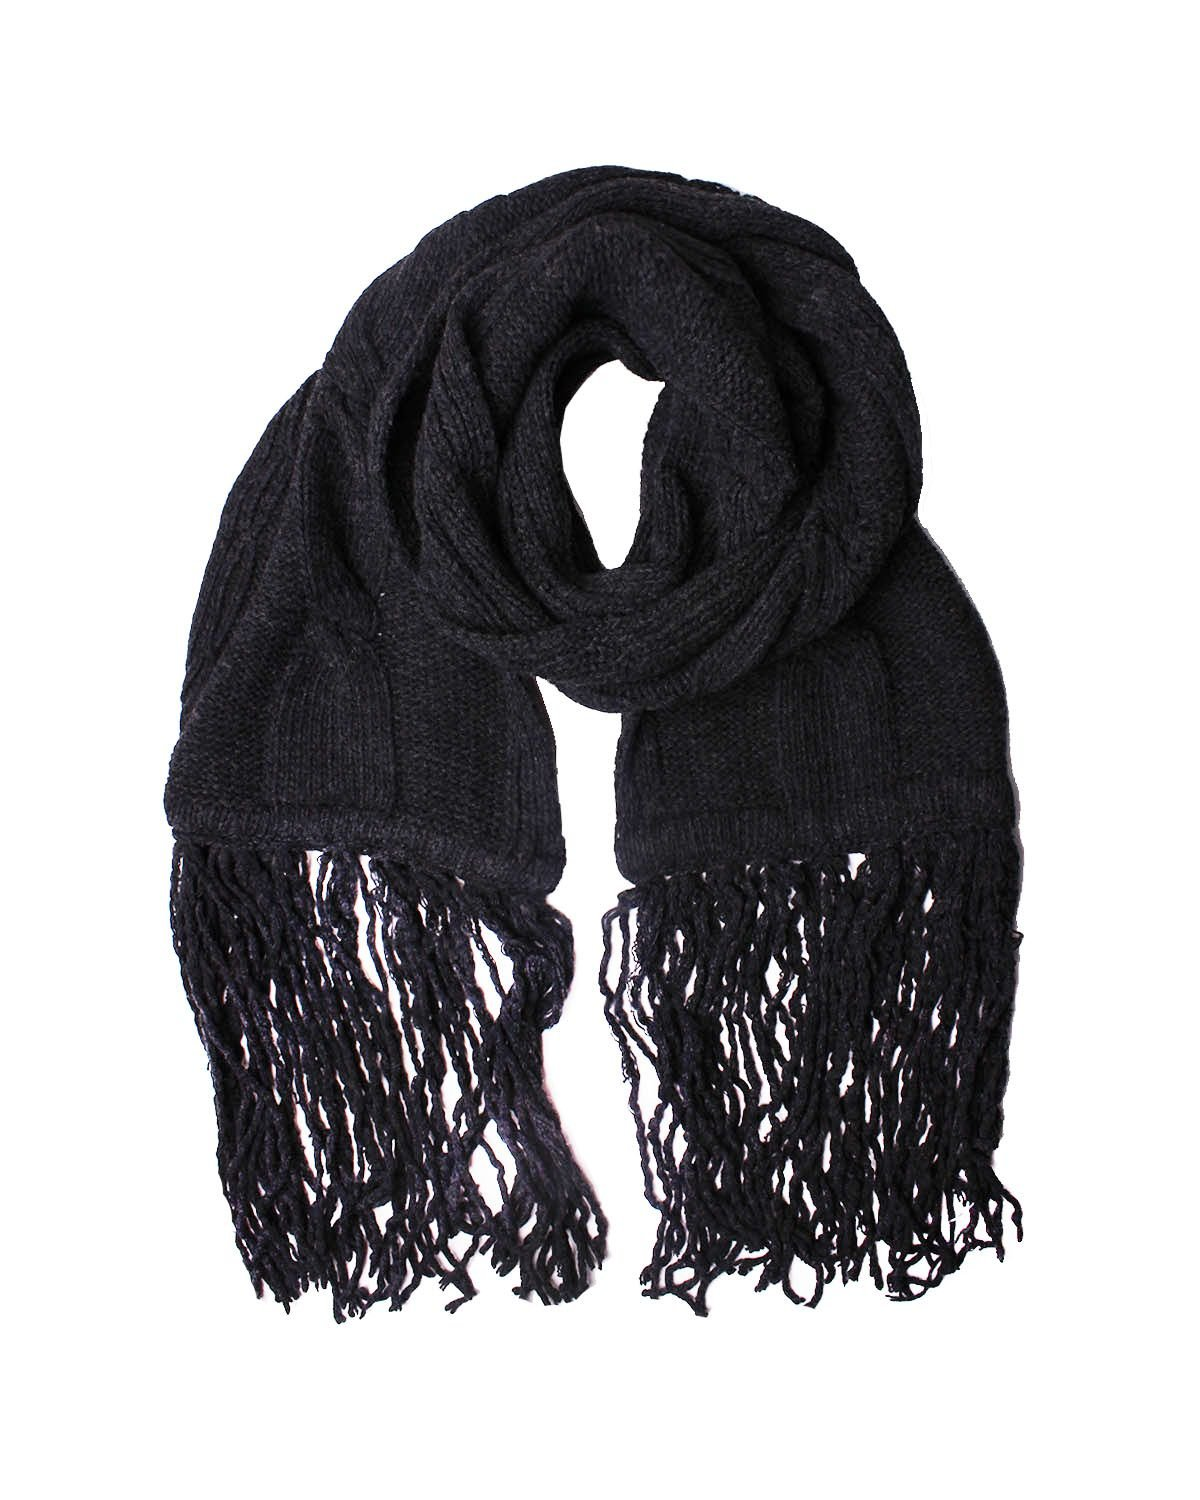 DIESEL BLACK GOLD - Wool and Cashmere Scarf 81x10 in / 205x25 cm SCIATREC - gray, One size by Diesel